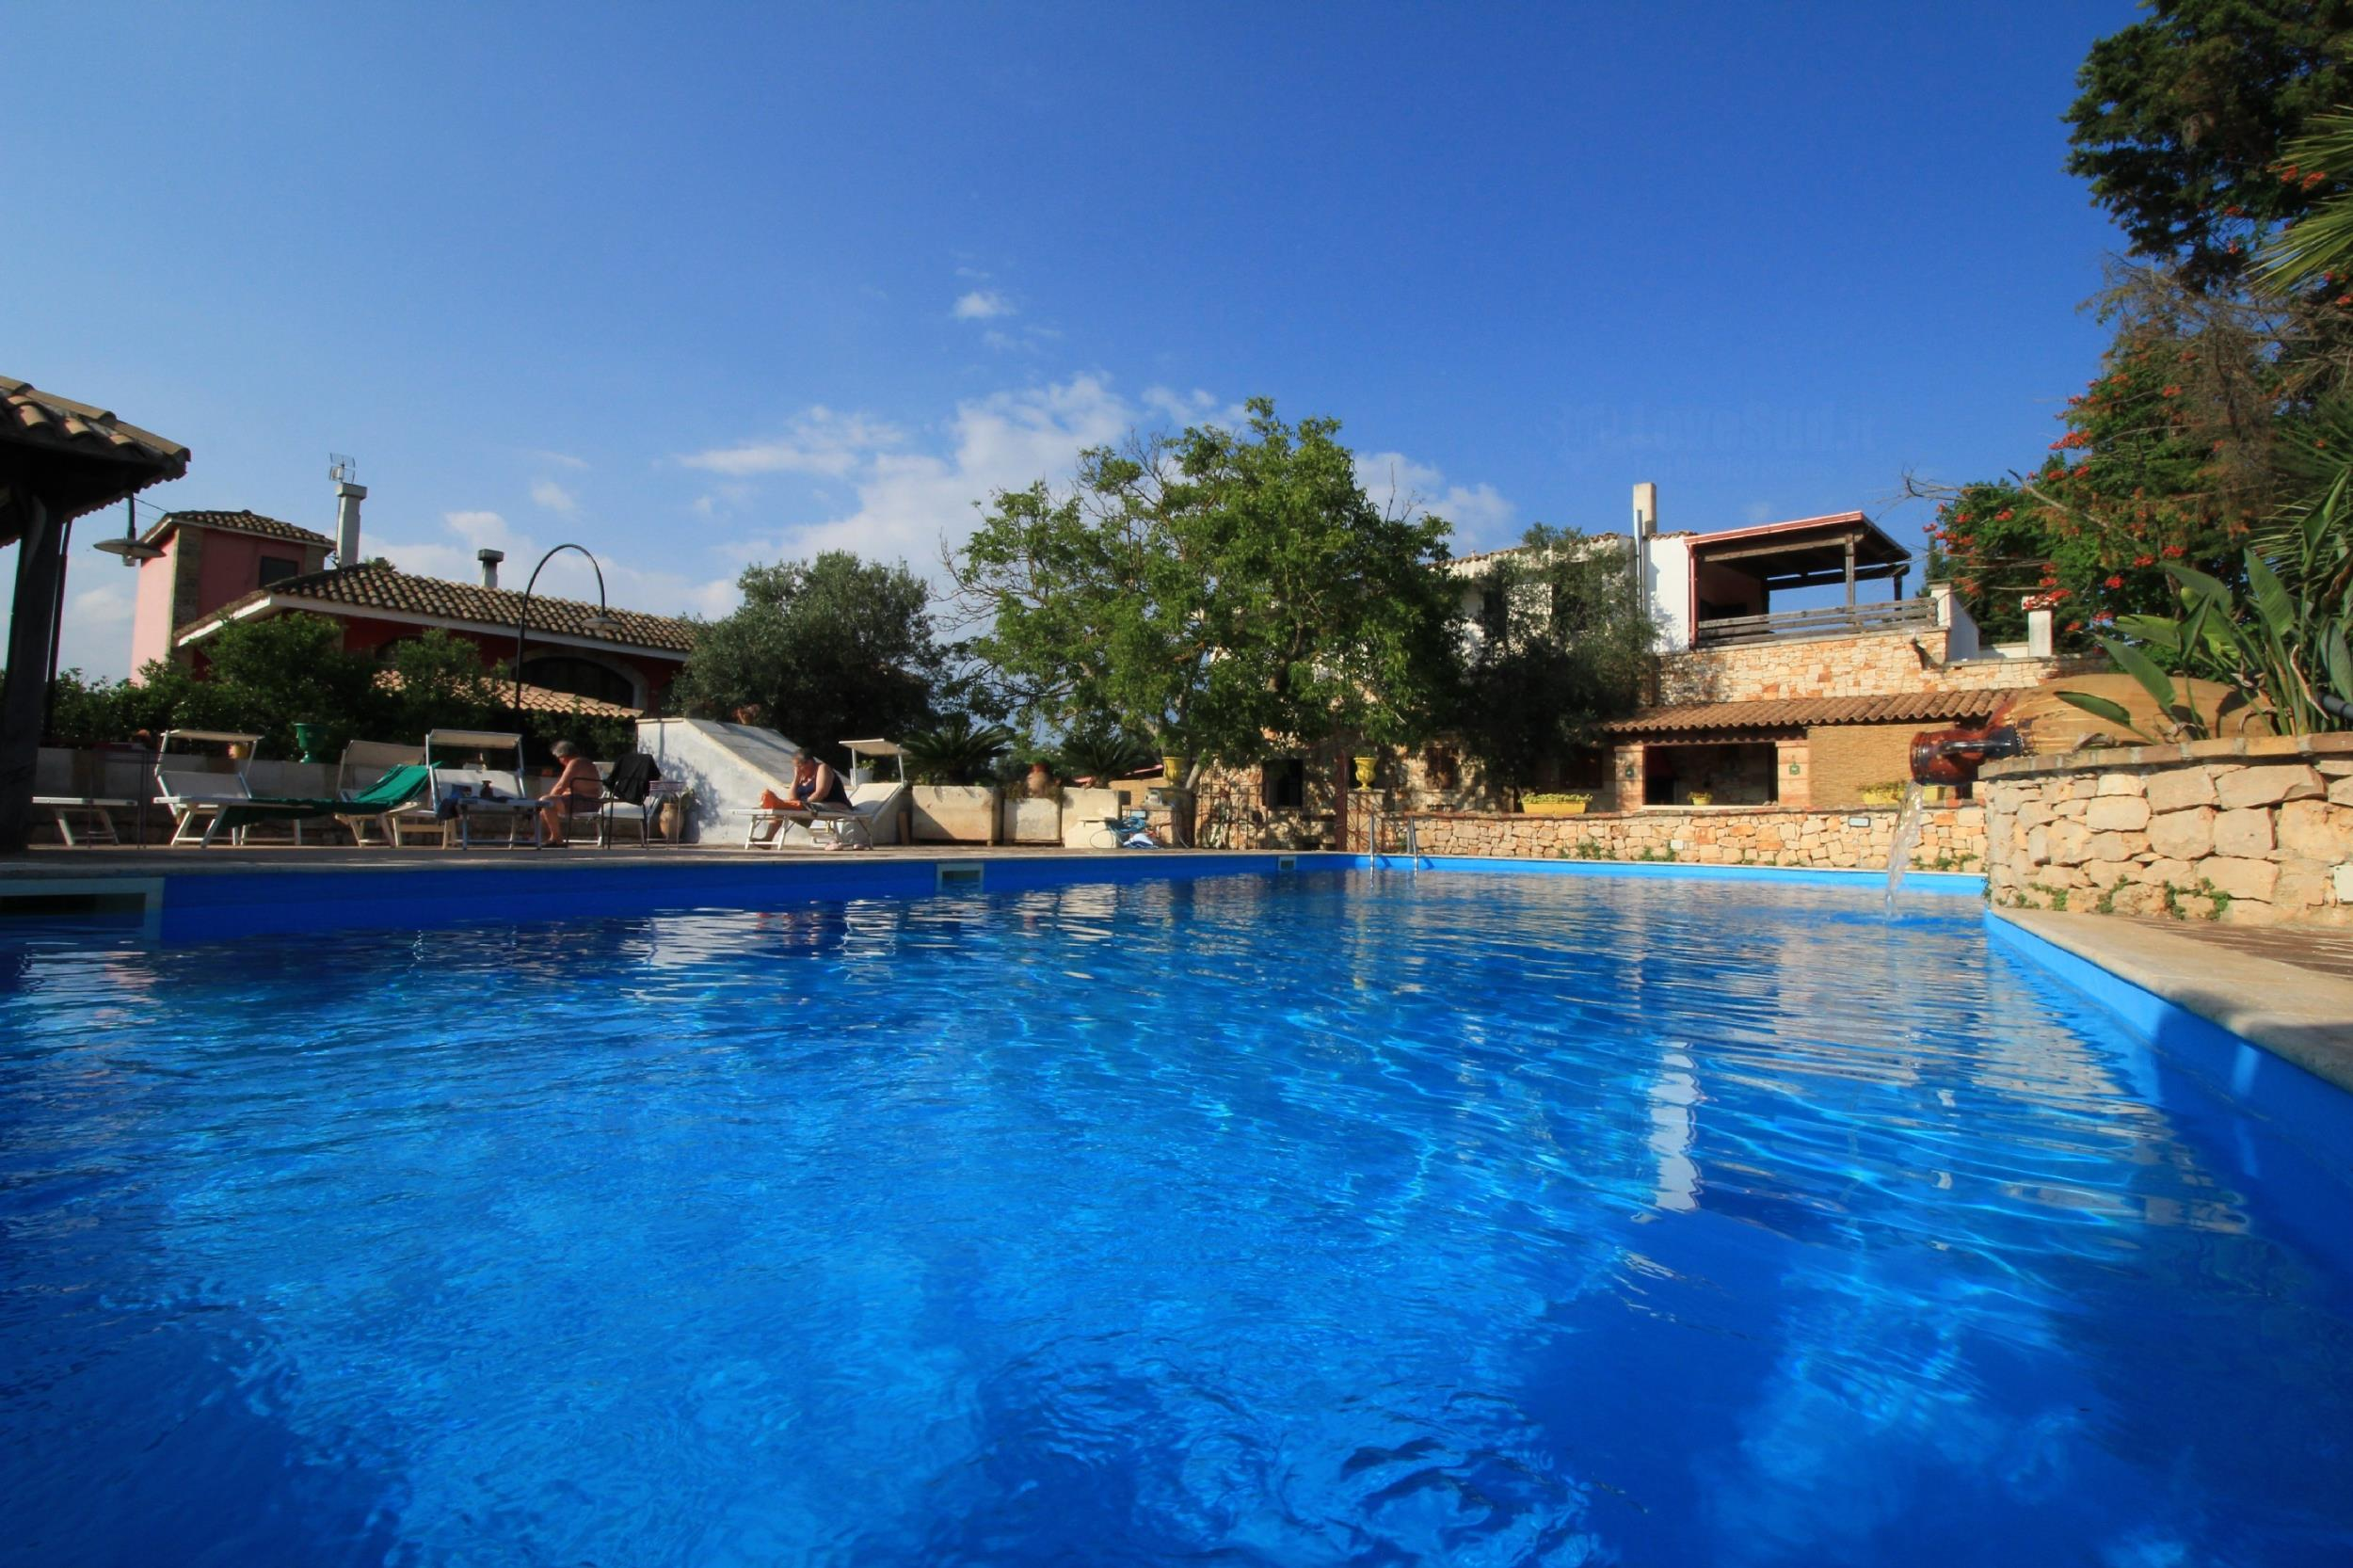 Apartment Trilo Noce shared pool photo 25188293